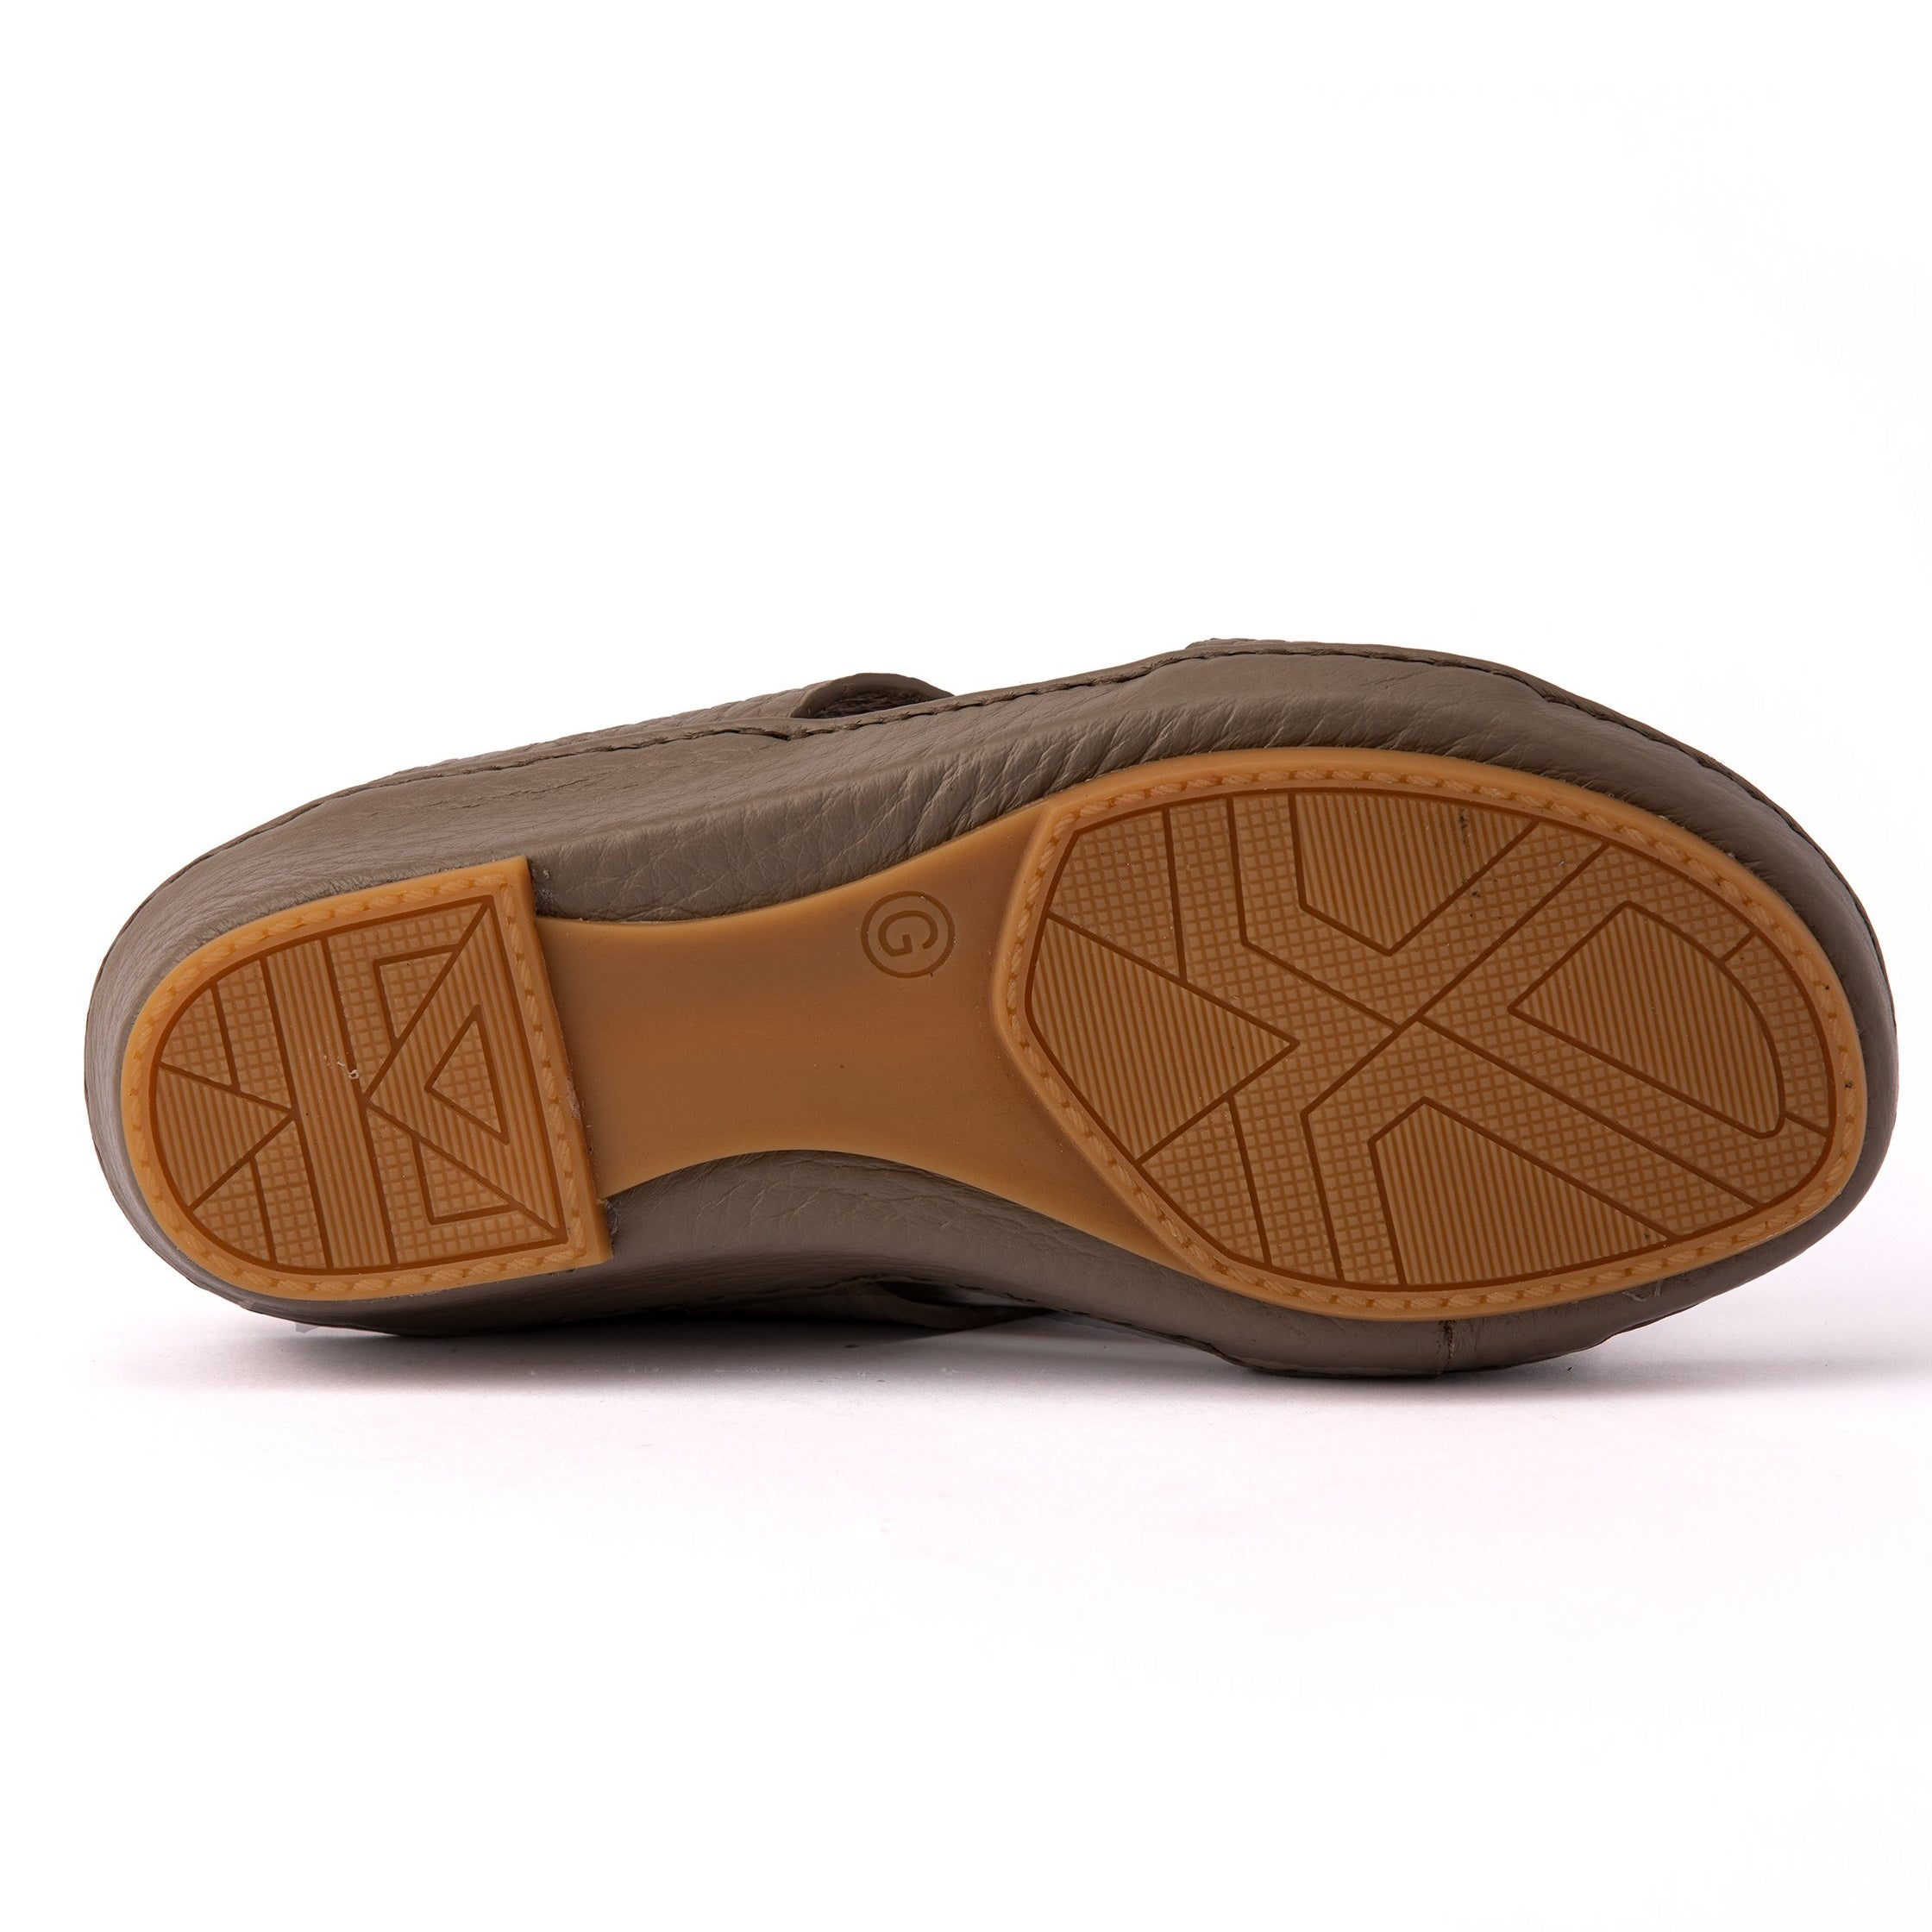 Stone Unlined Boys Arabic Sandals (317-80)